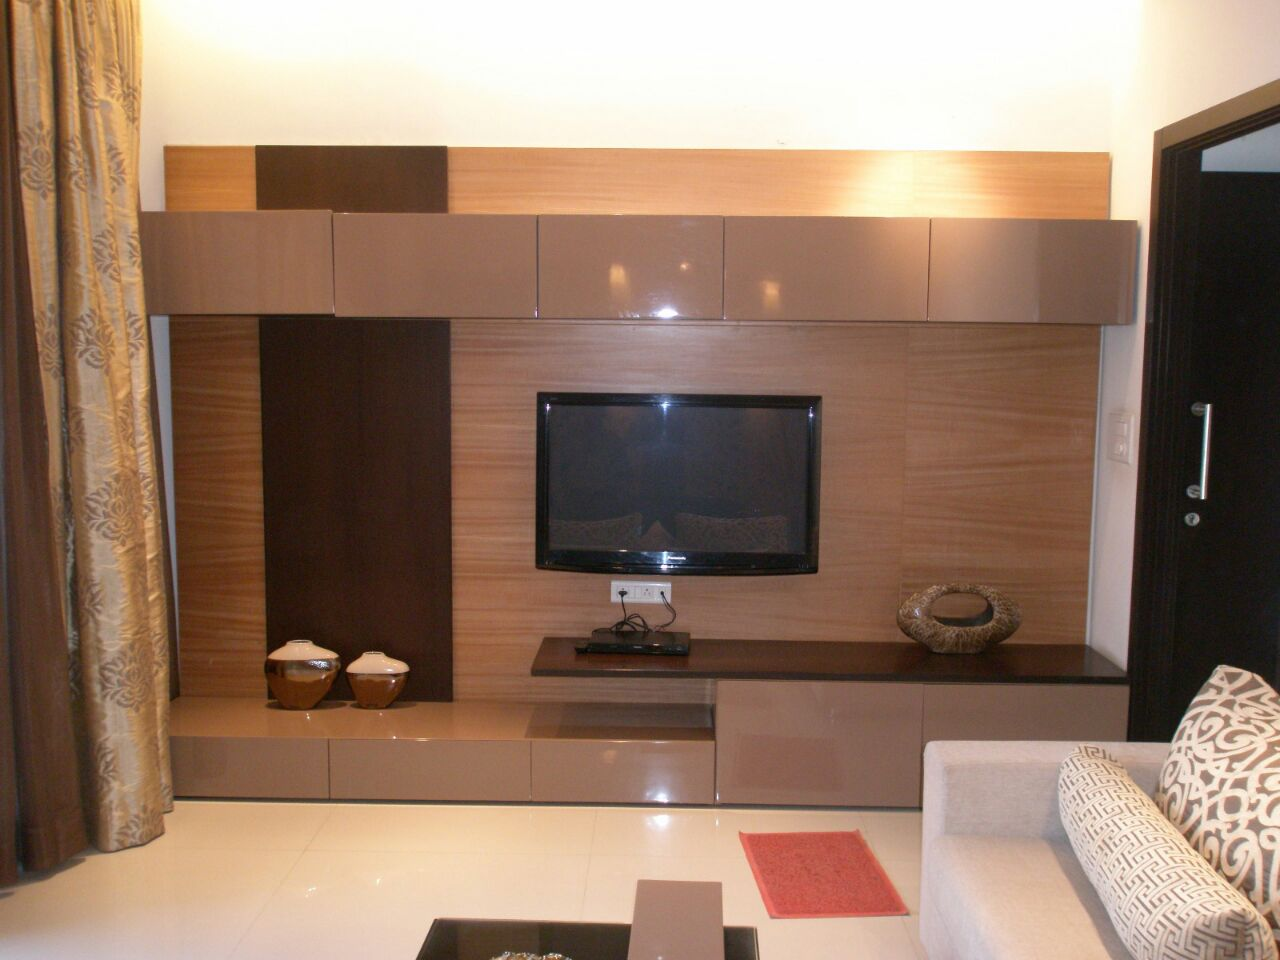 TV unit hinged To Glossy Tv Cabinet with Chocolate Brown Display Unit by Sudeep S Gandhi ID Living-room Contemporary | Interior Design Photos & Ideas